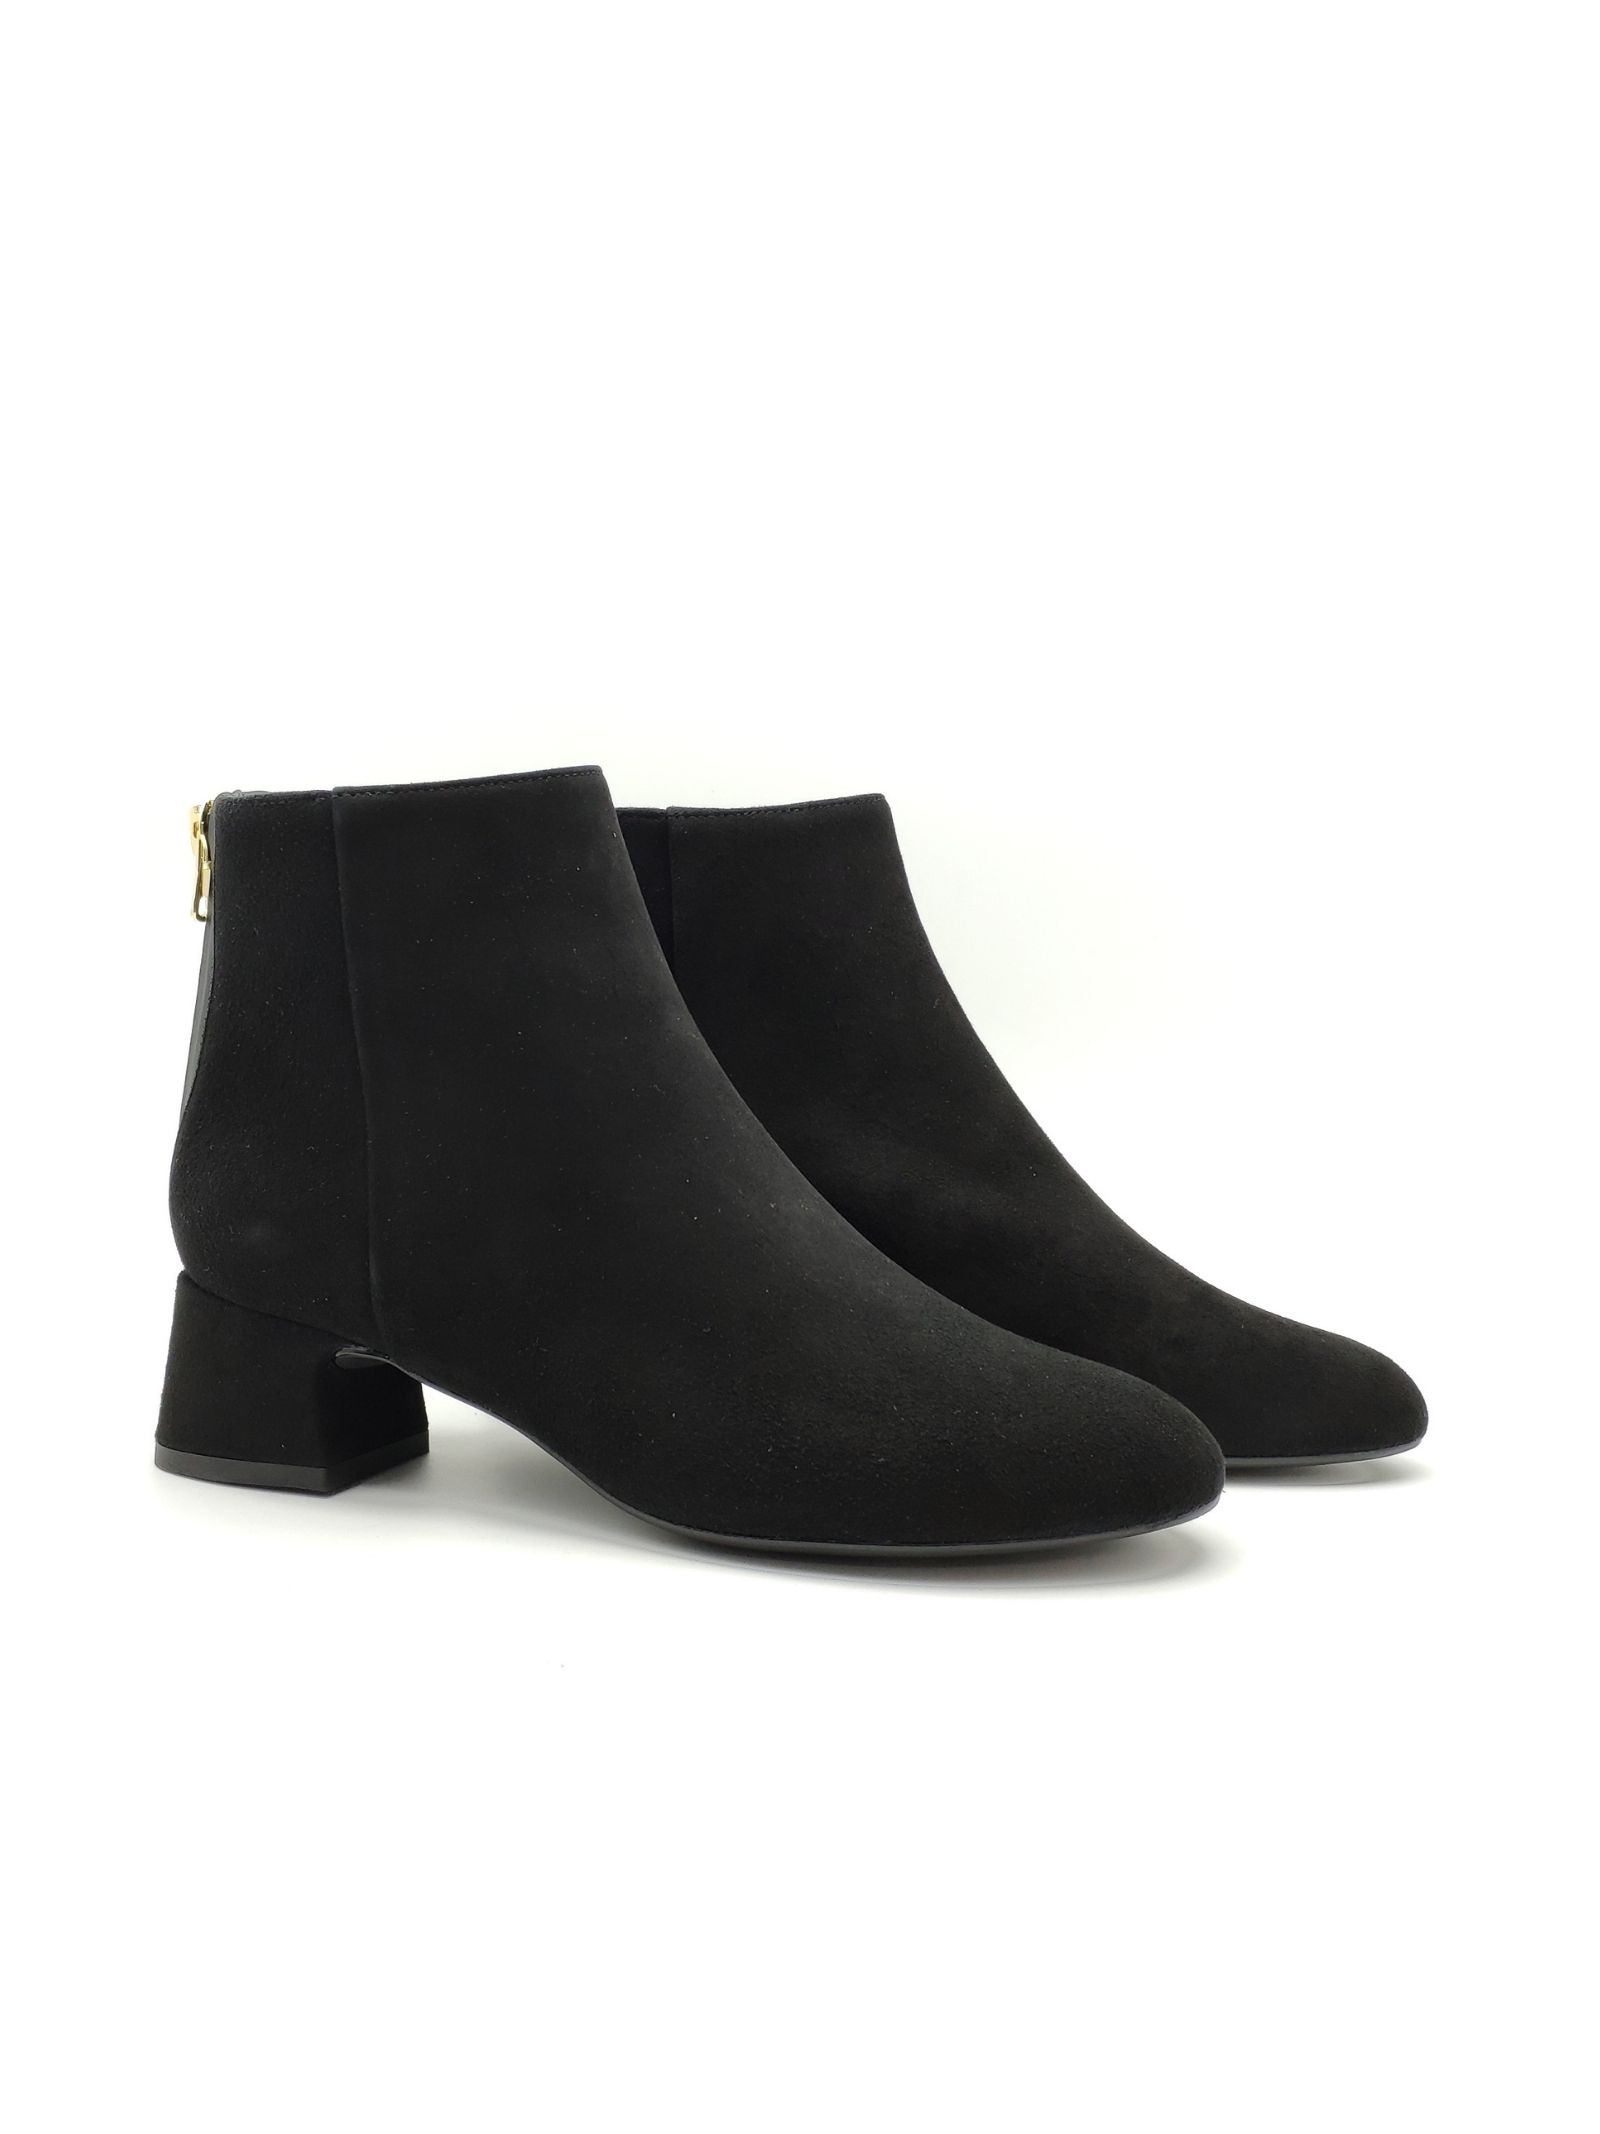 Women's Ankle Boots Unisa | Ankle Boots | LOLITANERO